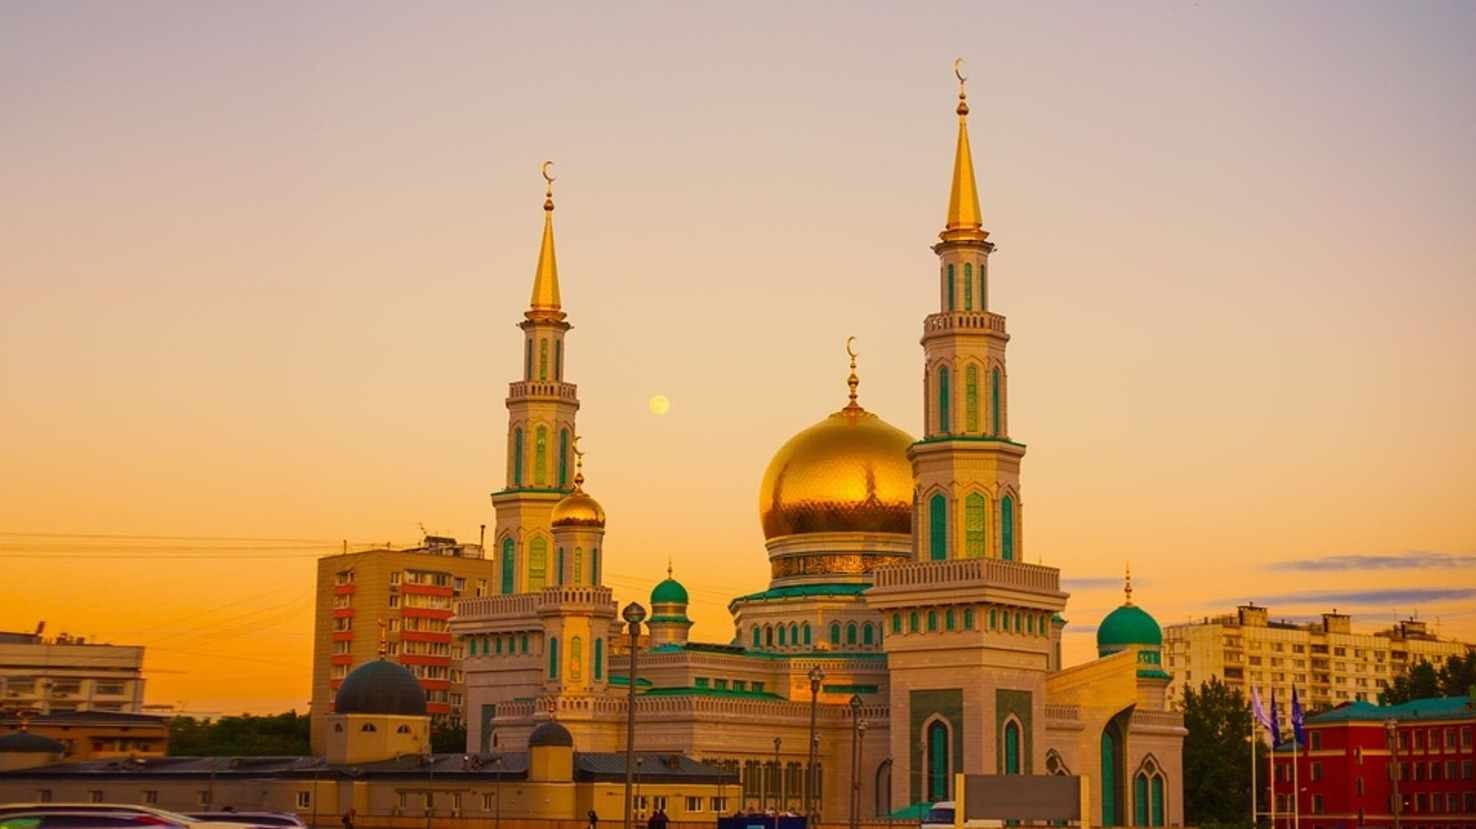 Large moscow cathedral mosque 1483524 960 720